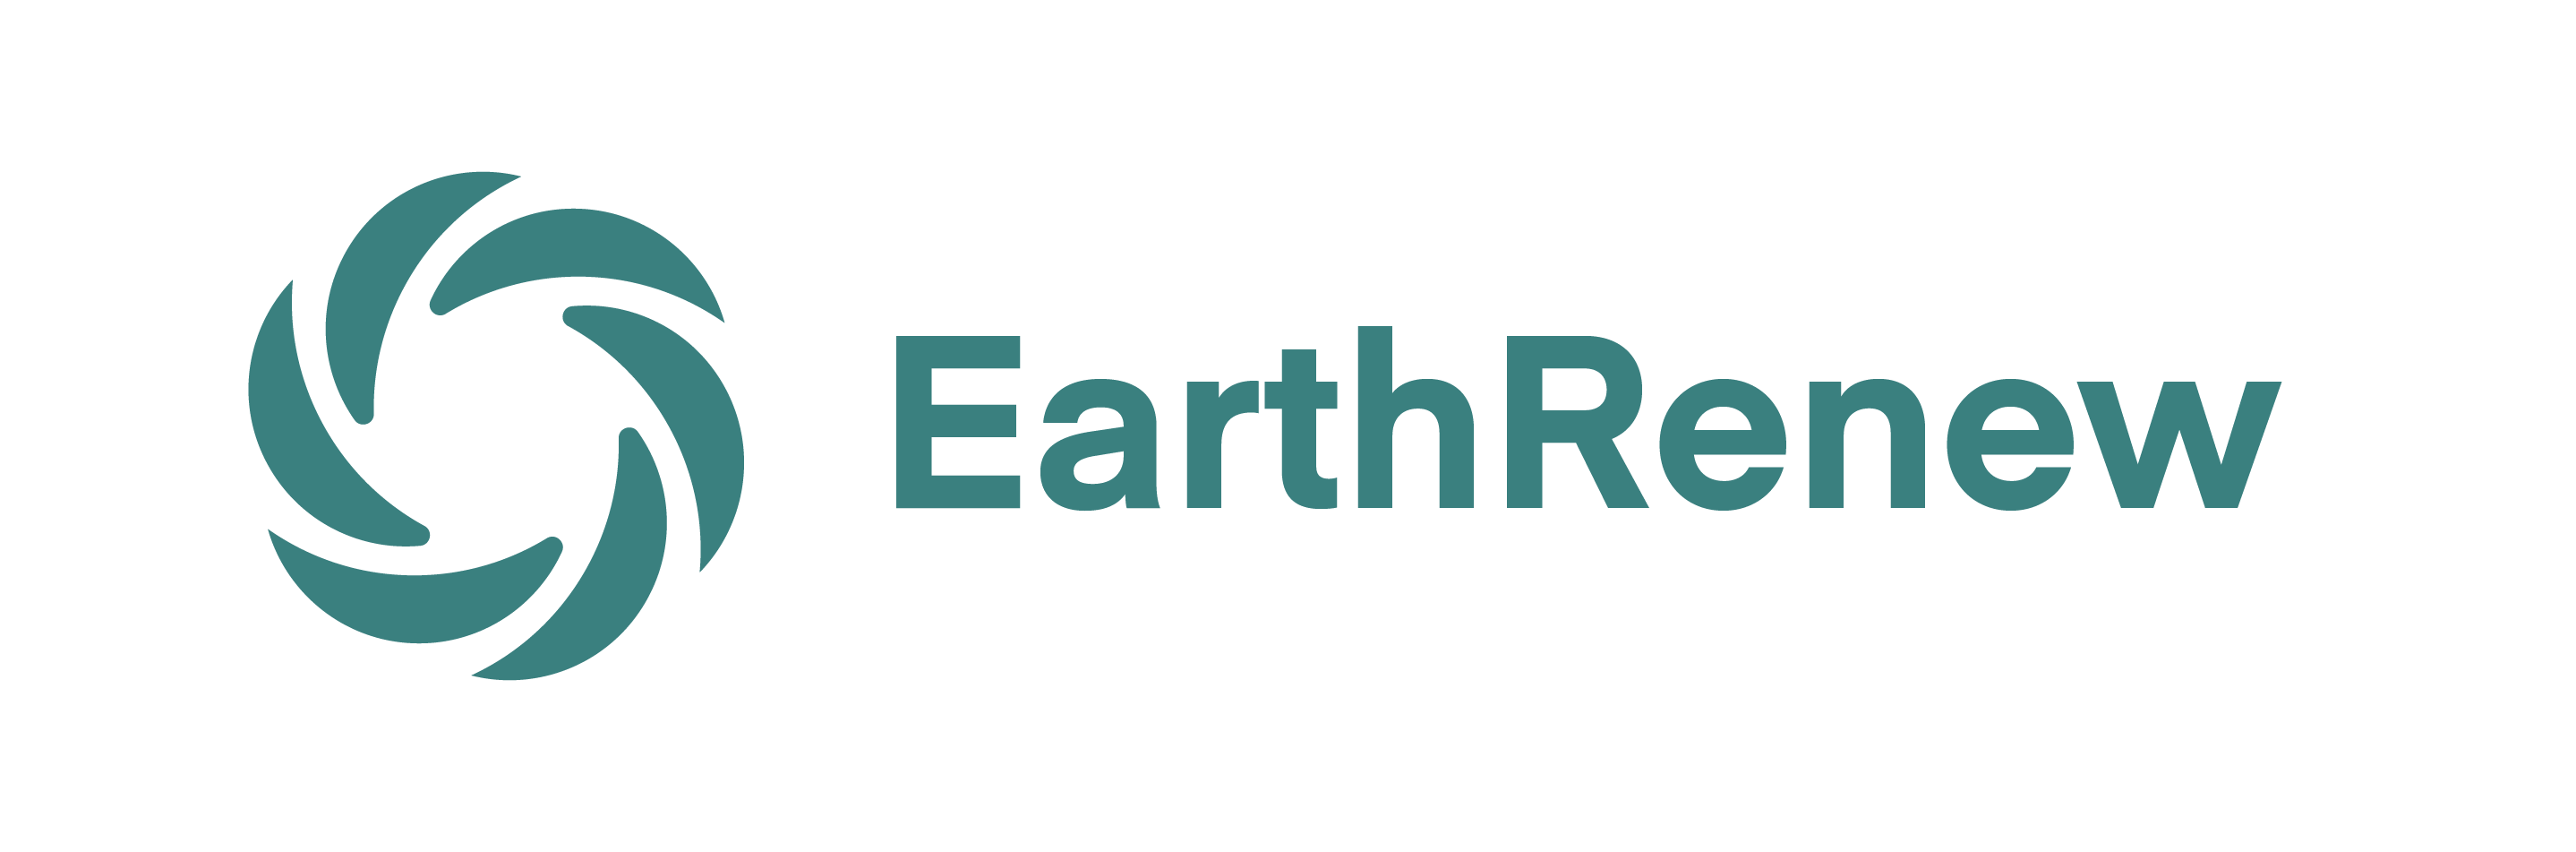 EarthRenew to Acquire Stake in Replenish Nutrients Ltd